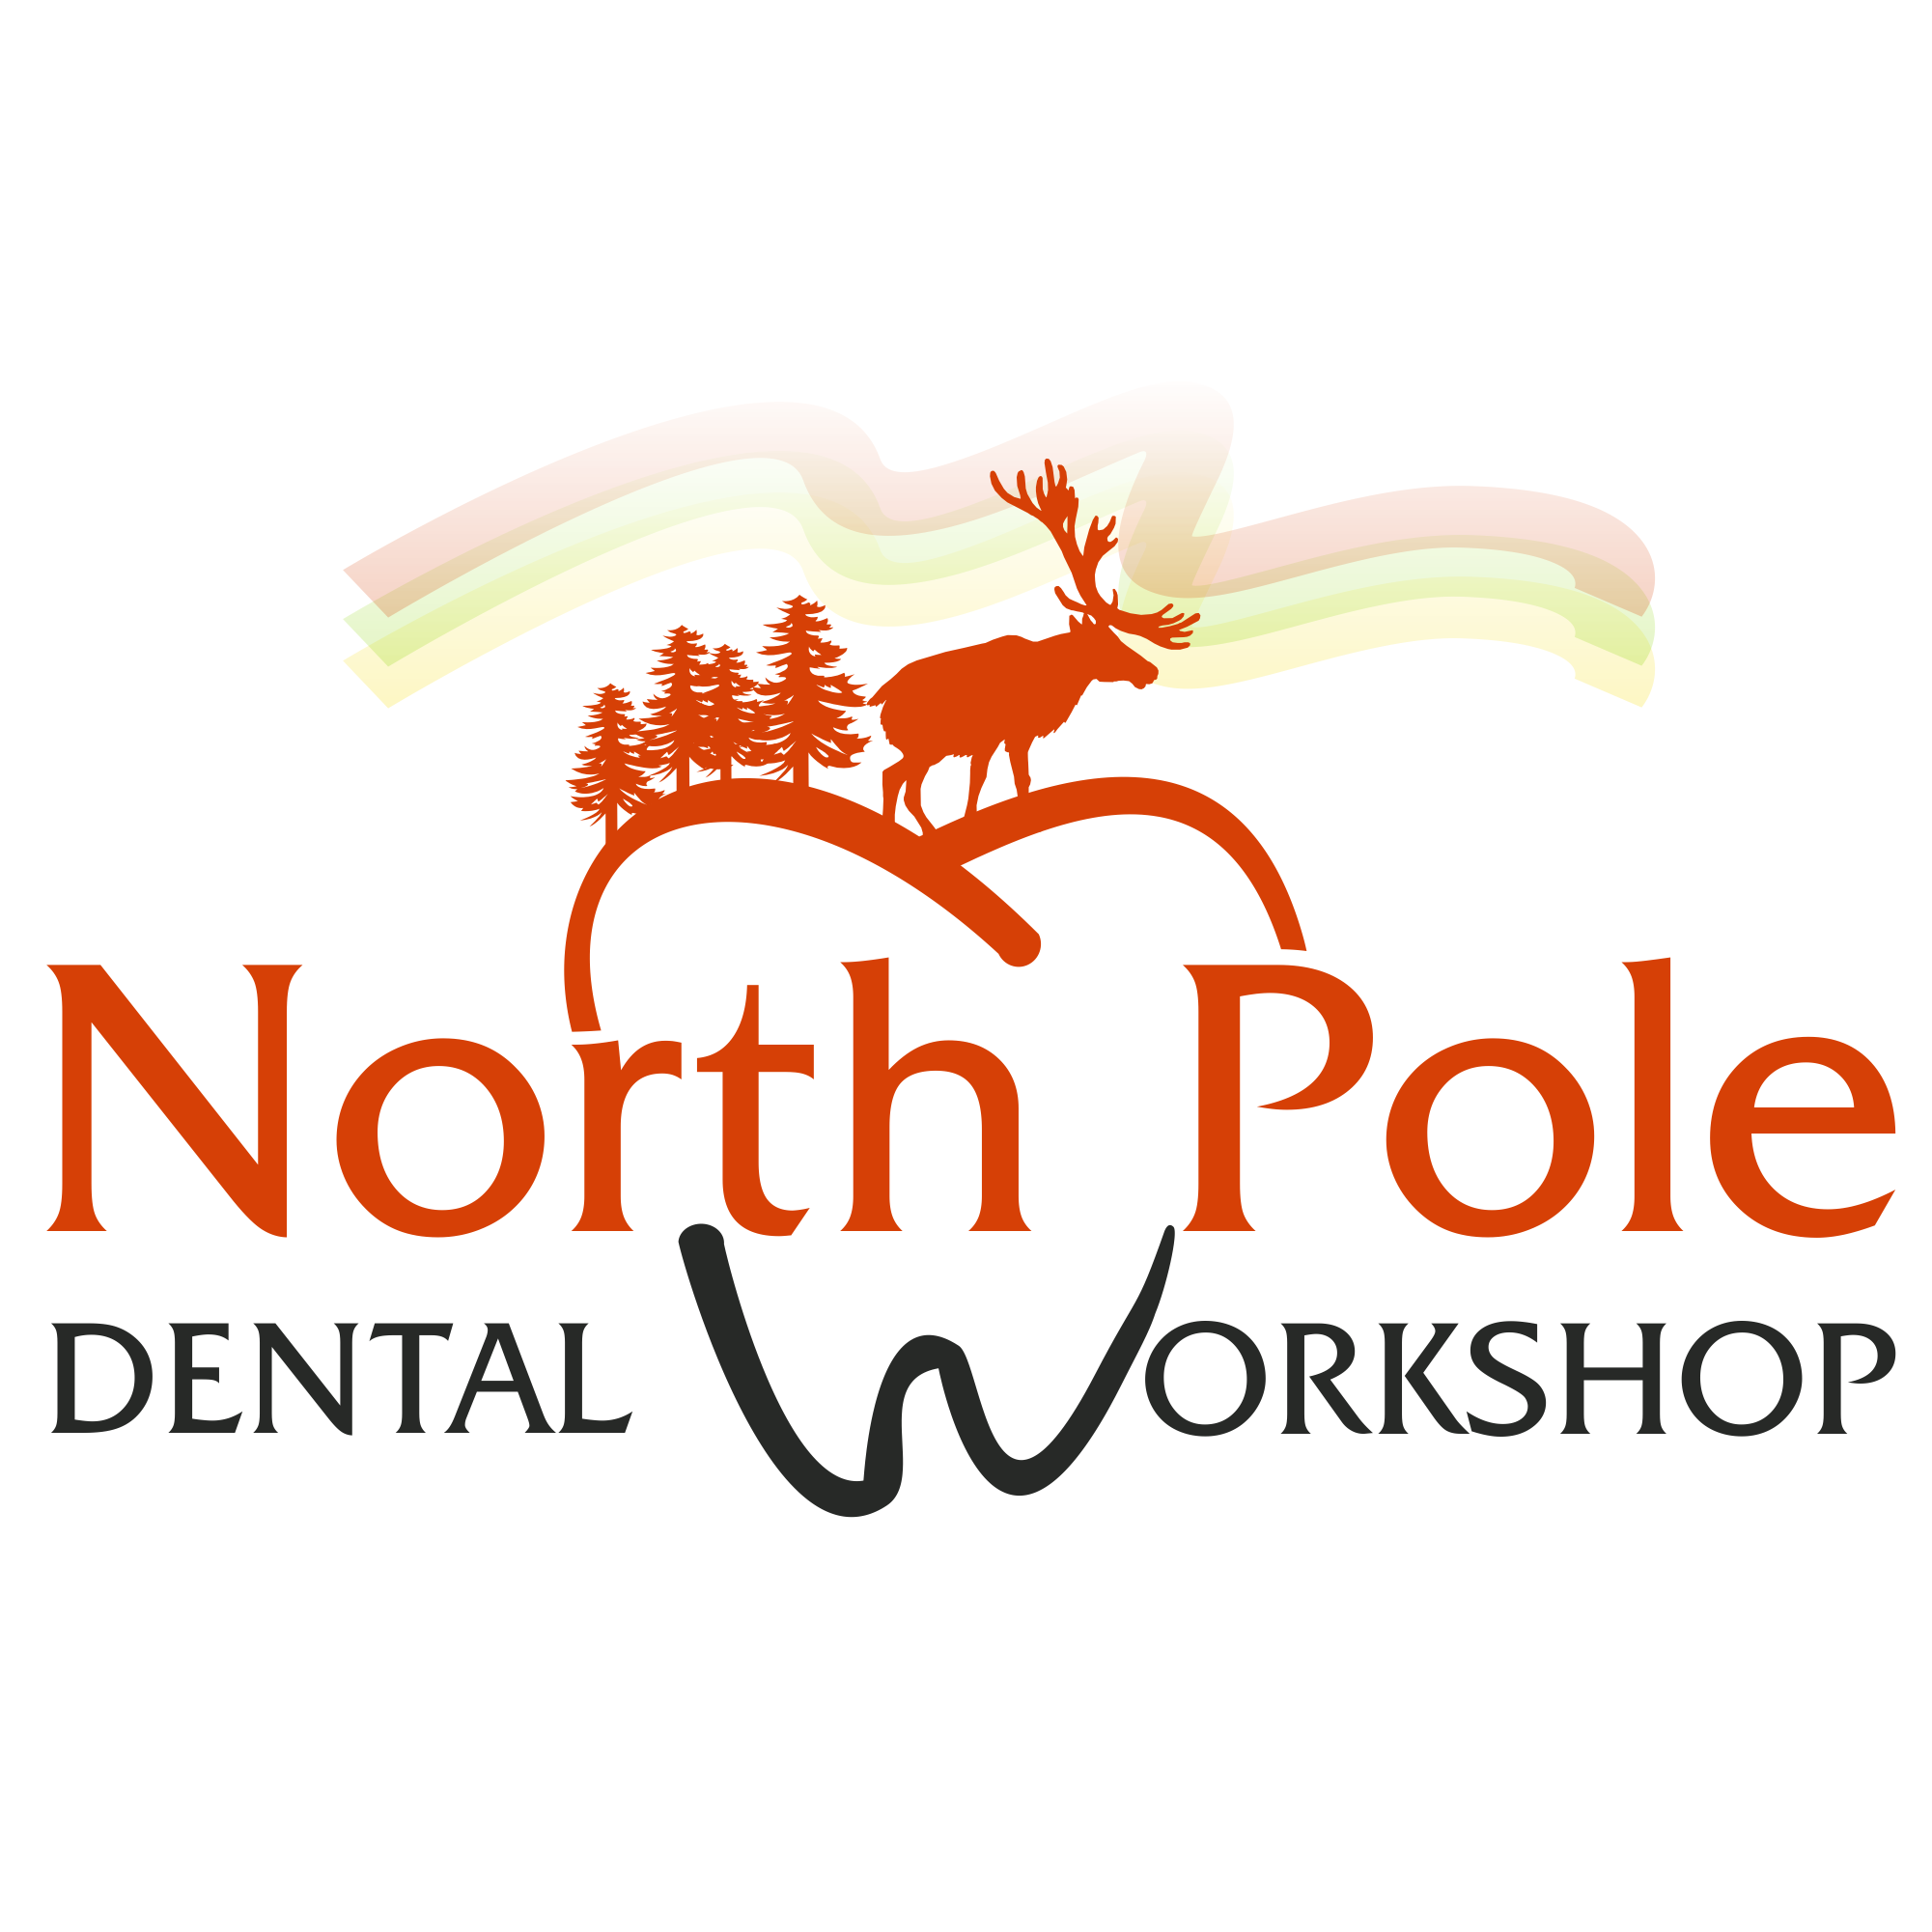 North Pole Dental Workshop Coupons Near Me In North Pole